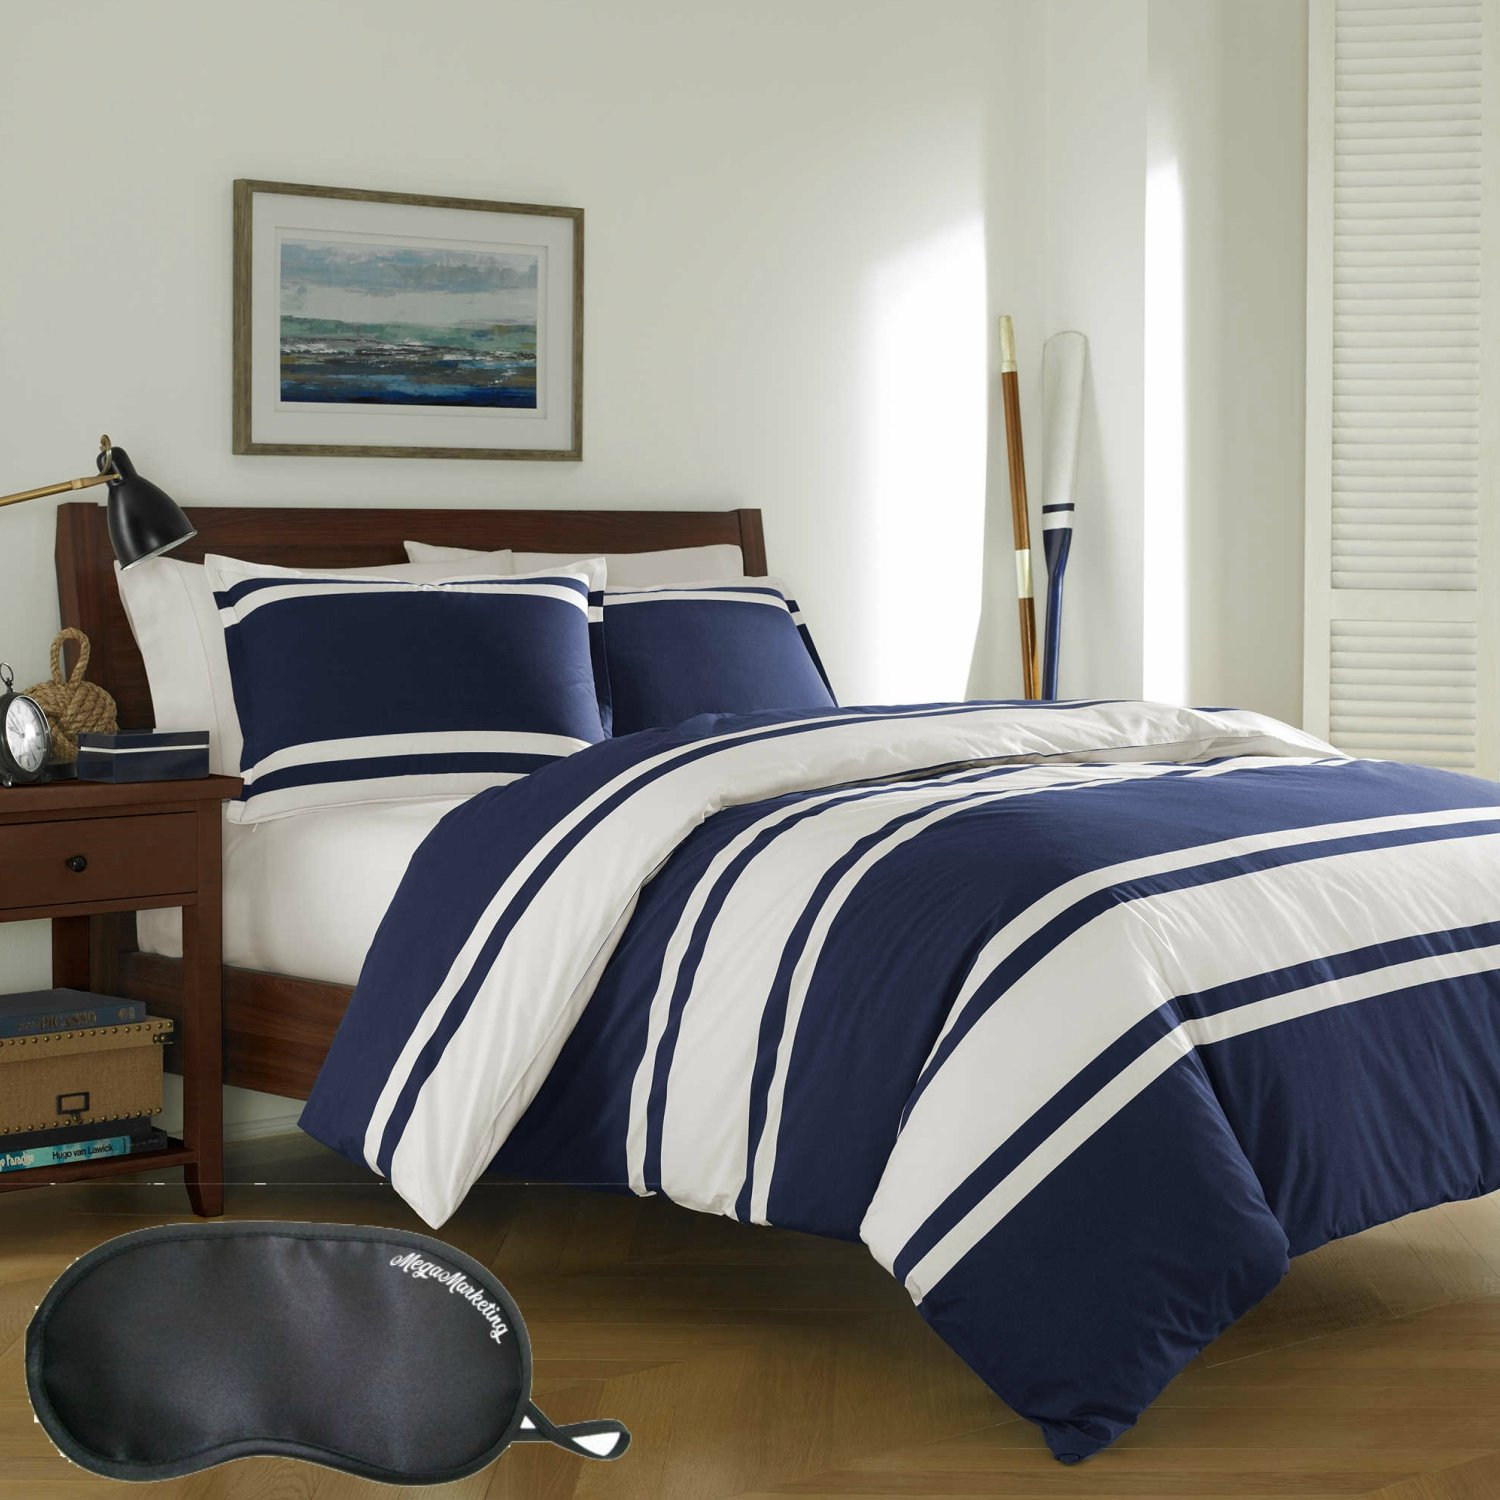 Poppy & Fritz Rylan Rugby Stripe 3-Piece FULL/QUEEN Size Reversible Duvet Cover Set in Navy, Made of 100% Cotton with Sleep Mask